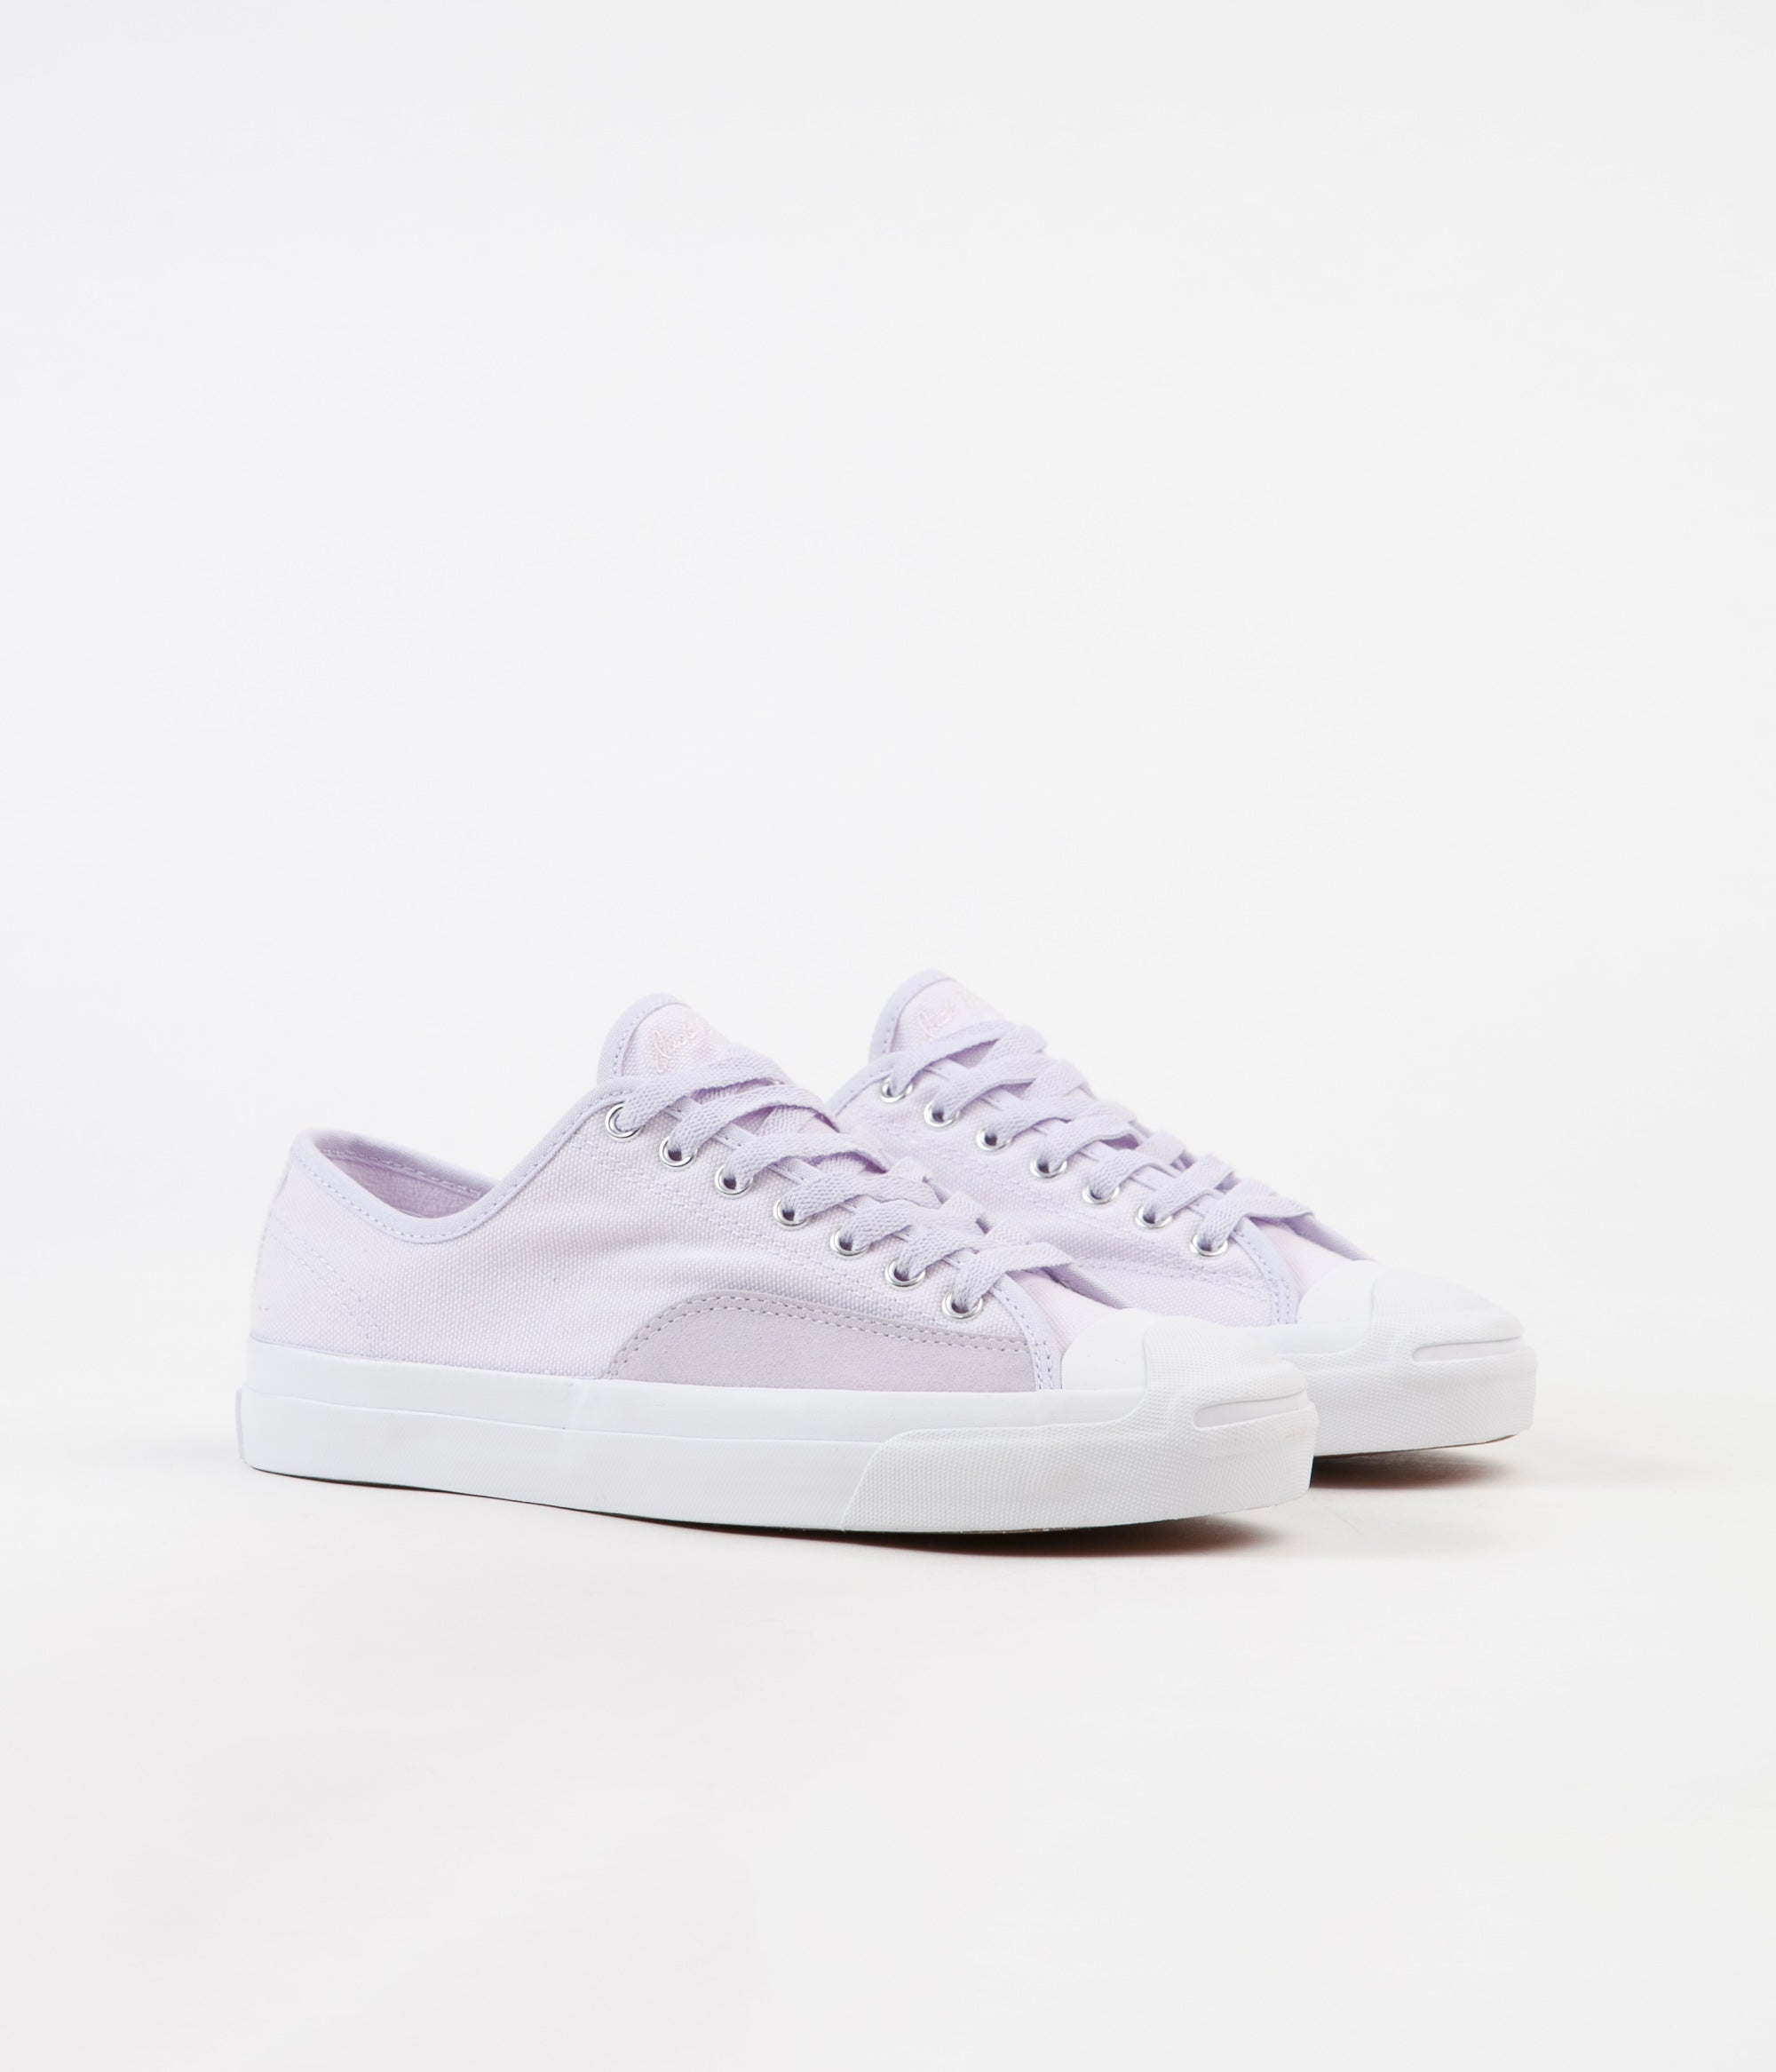 ... Converse JP Pro Ox Shoes - Barely Grape   Barely Grape ... f6f476f34